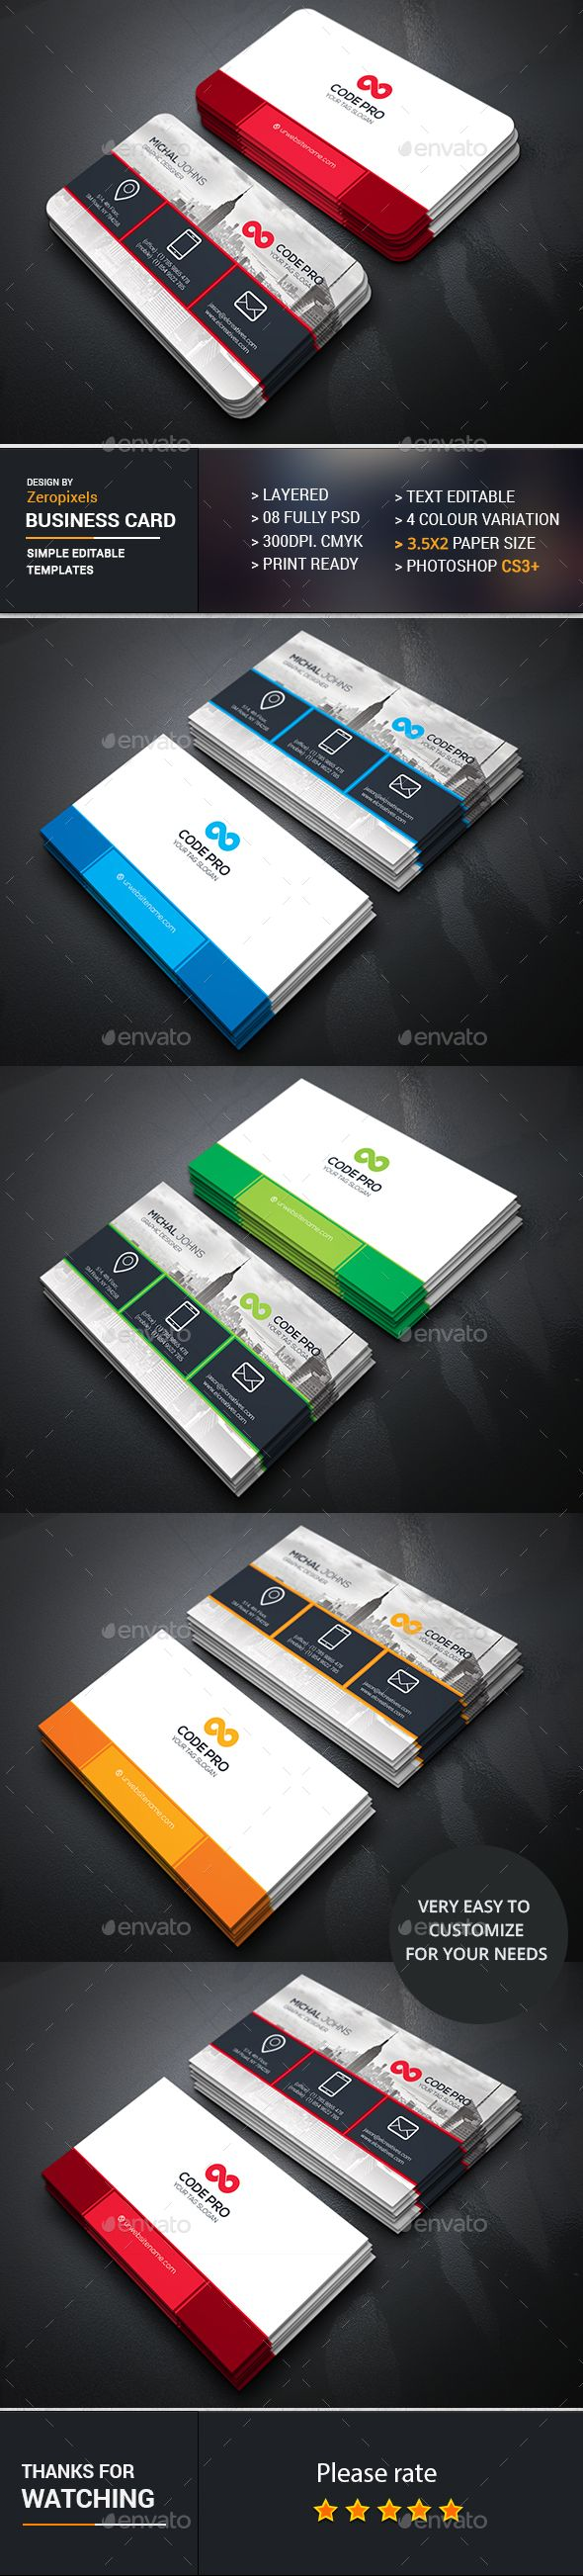 237 best Business Card Design images on Pinterest | Business card ...